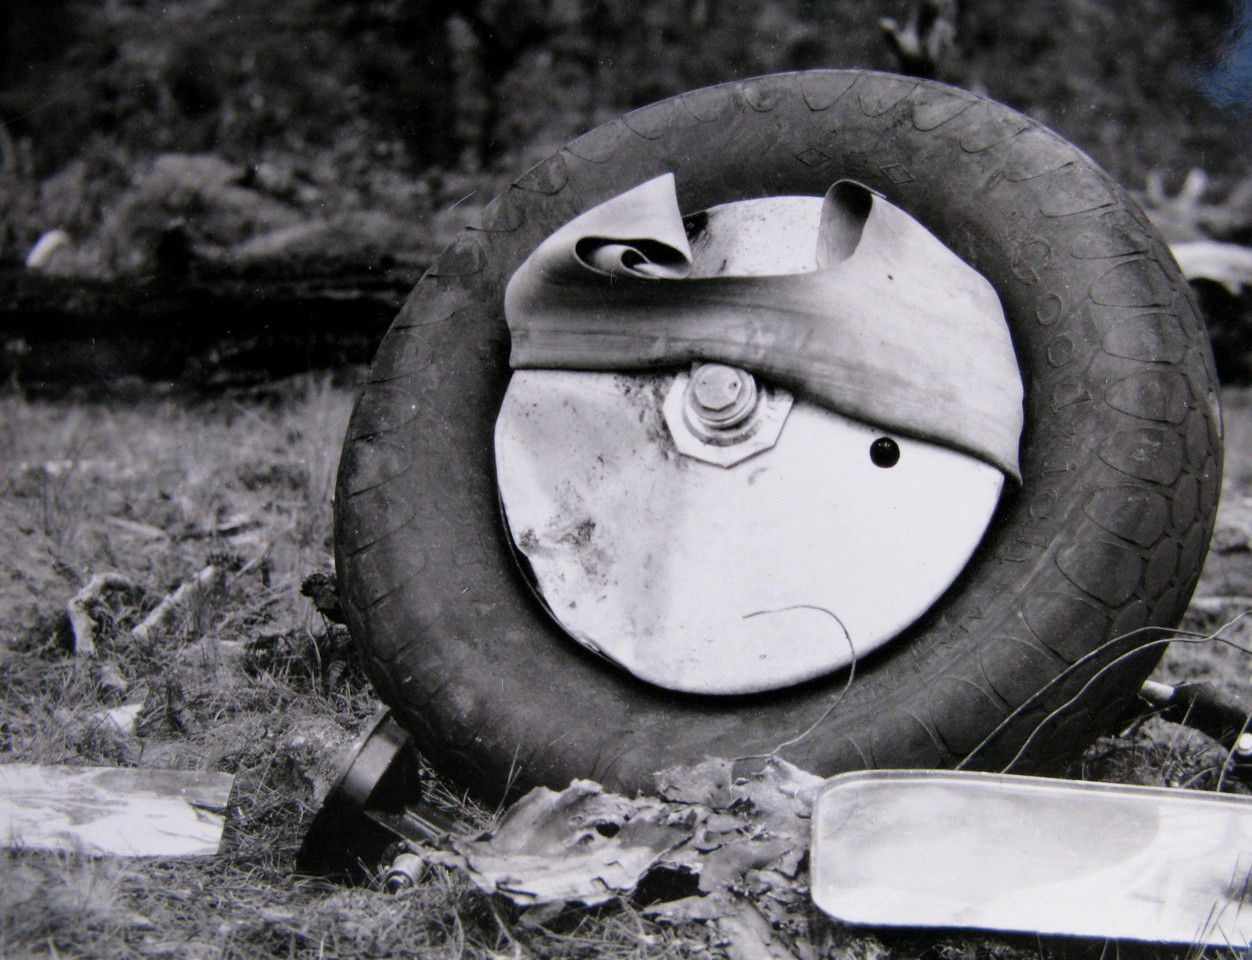 One of two main wheel and tire assemblies lie on the forest floor amid other wreckage debris. <br /> <br /> With the tube separated from the tire, it is more than likely that the tire along with the landing gear supports impacted the trees. (J.R. Willis Photo)